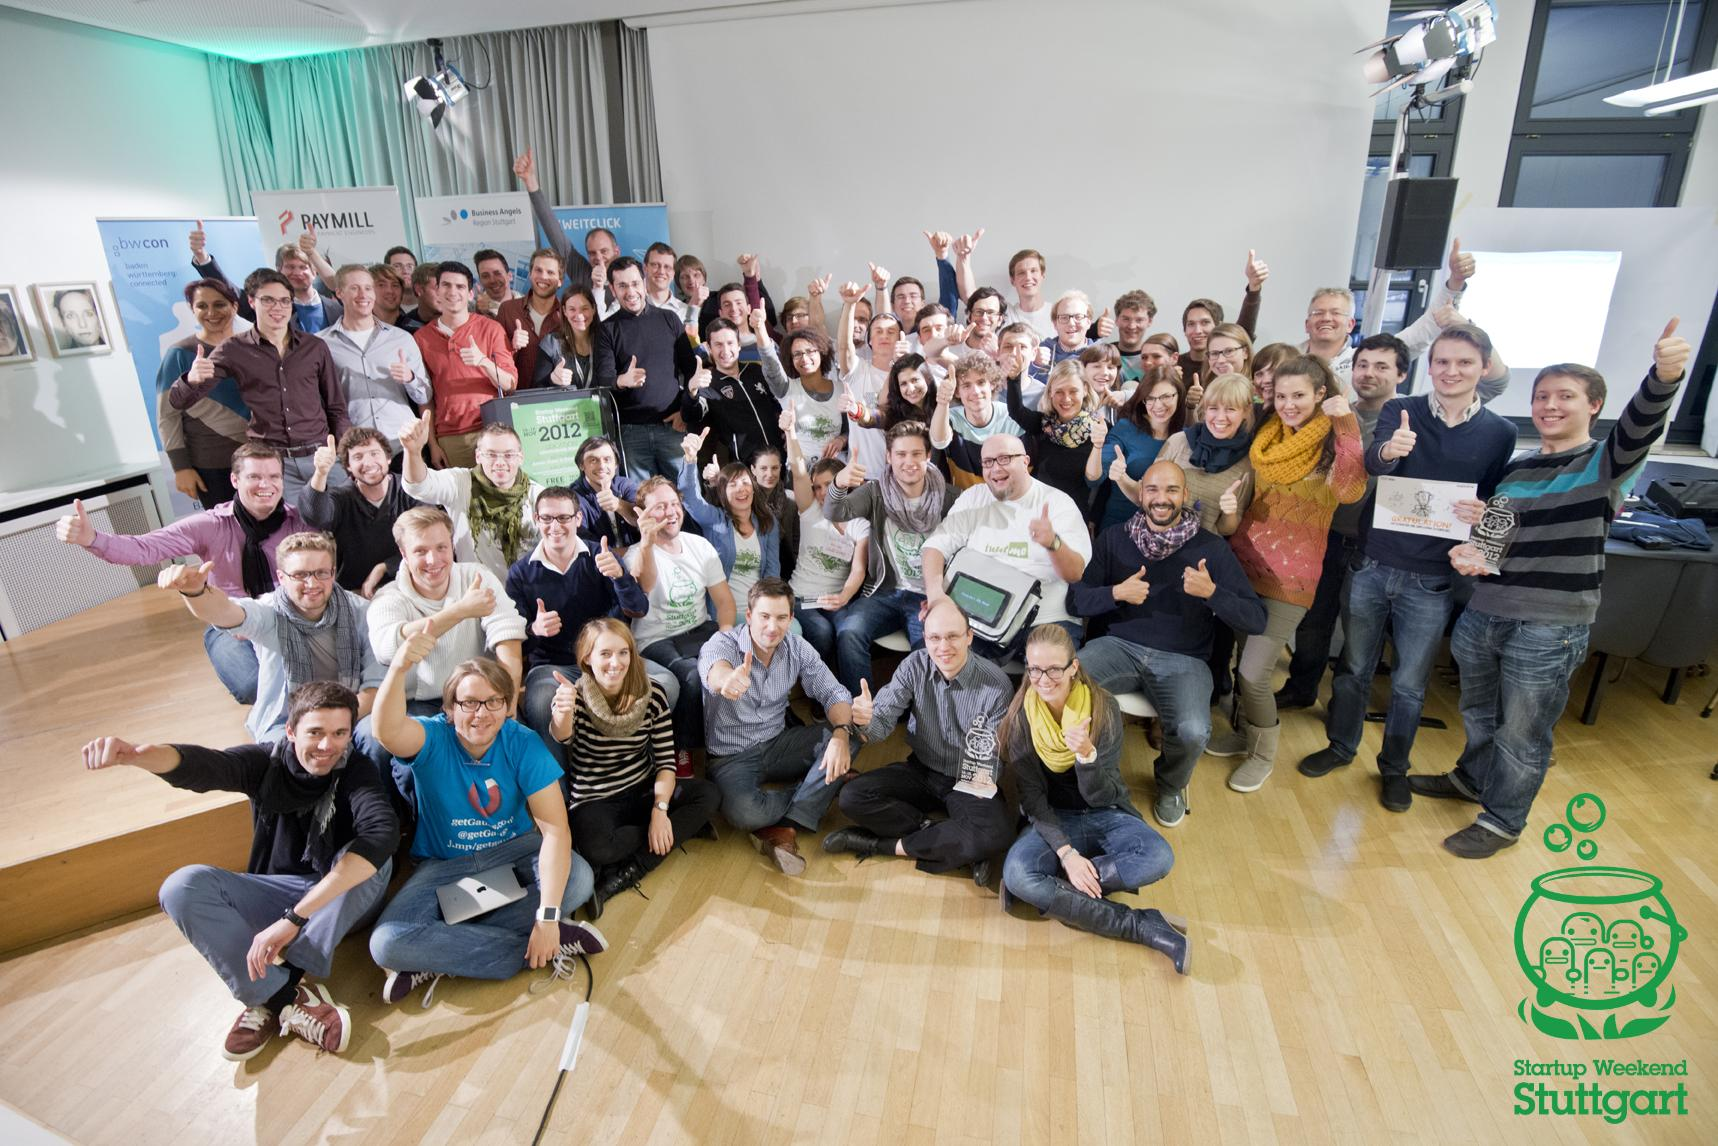 Why it is worth attending a Startup Weekend [sheffield.startupweekend.org]